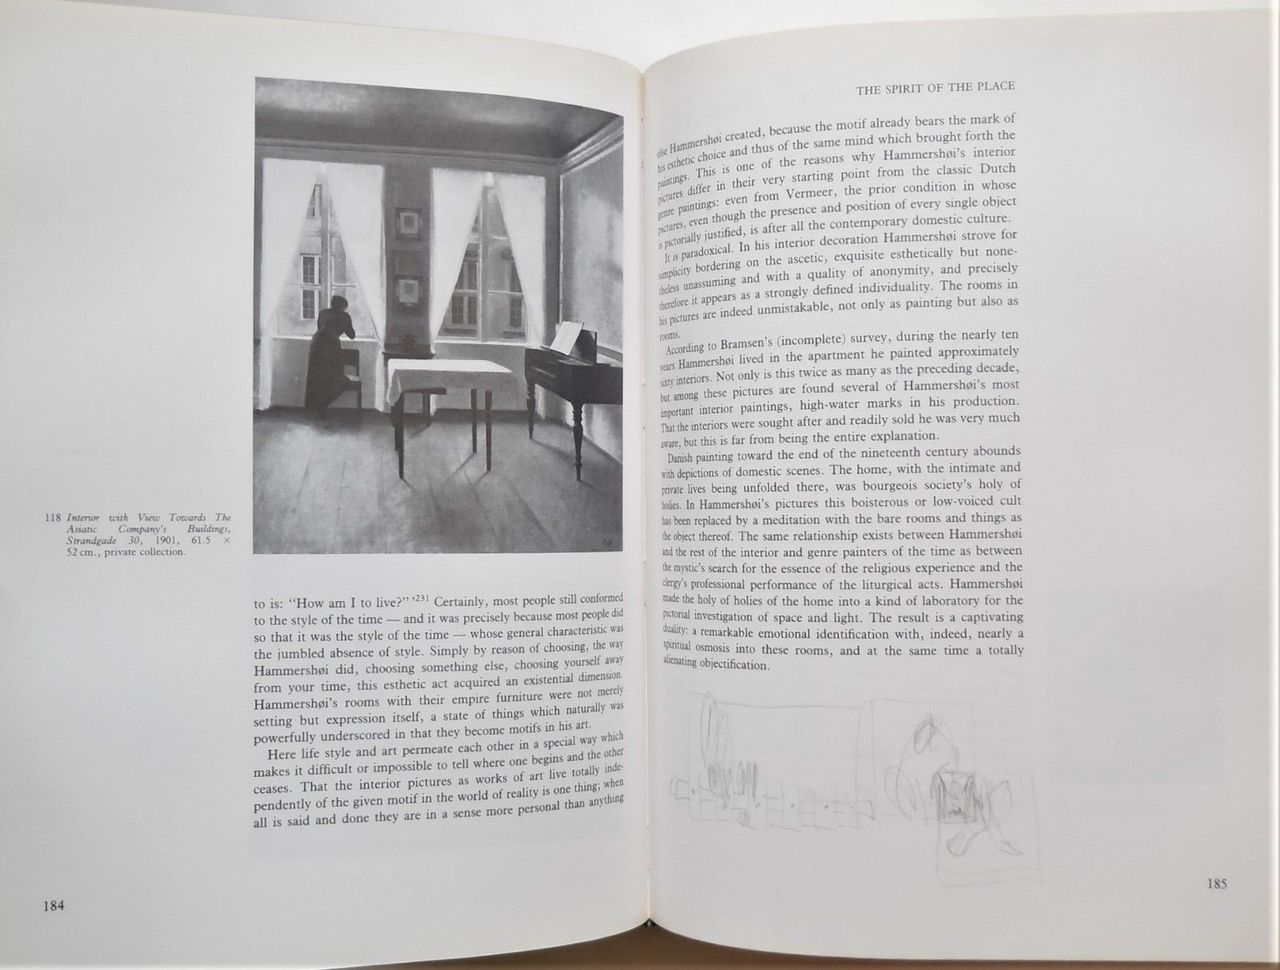 VILHELM HAMMERSHOI AND DANISH ART AT THE TURN OF THE CENTURY, by Poul Vad; Kenneth Tindall (tr) - 1992